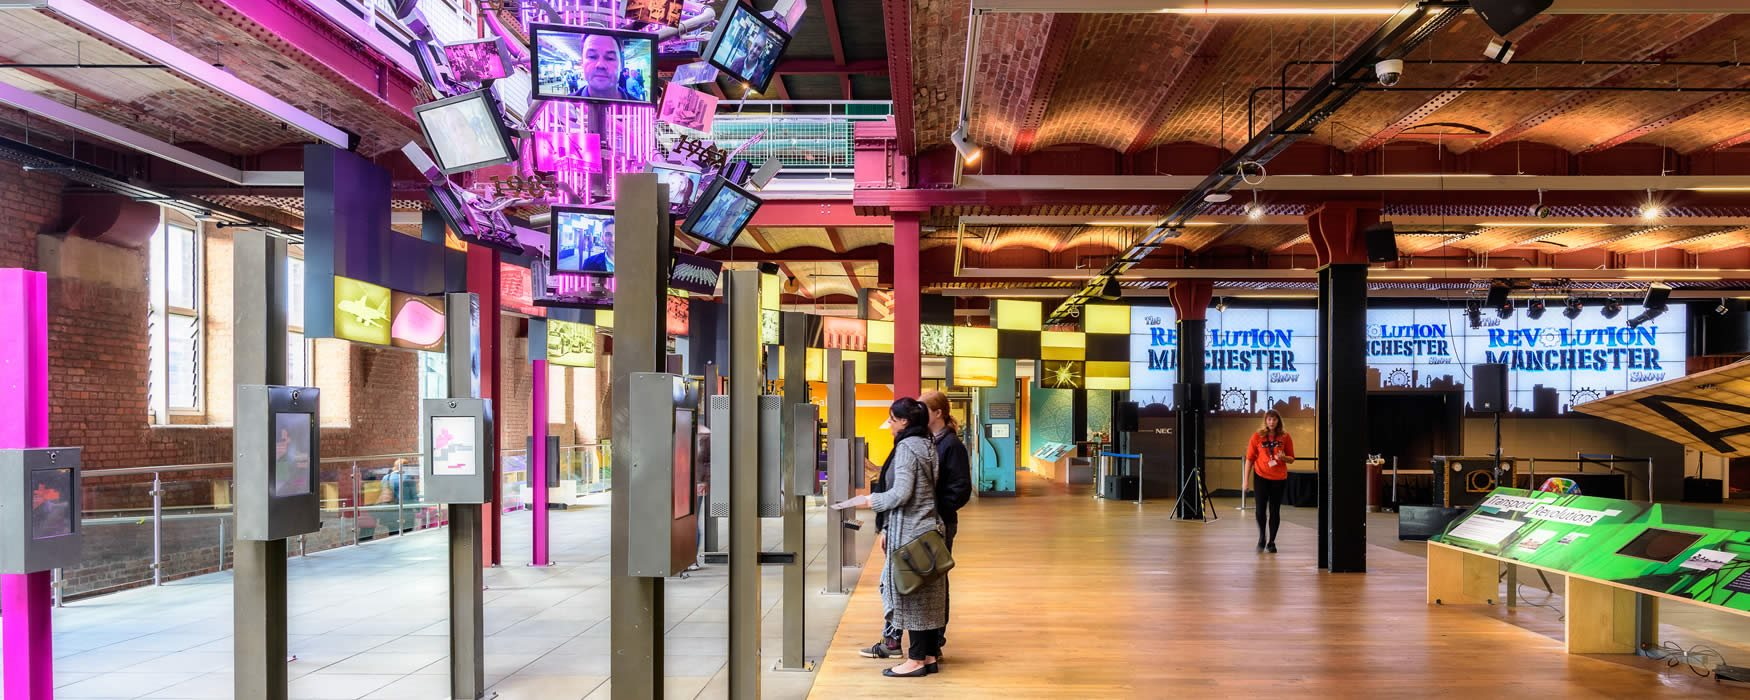 Family Friendly Things To Do In Manchester Visit Manchester